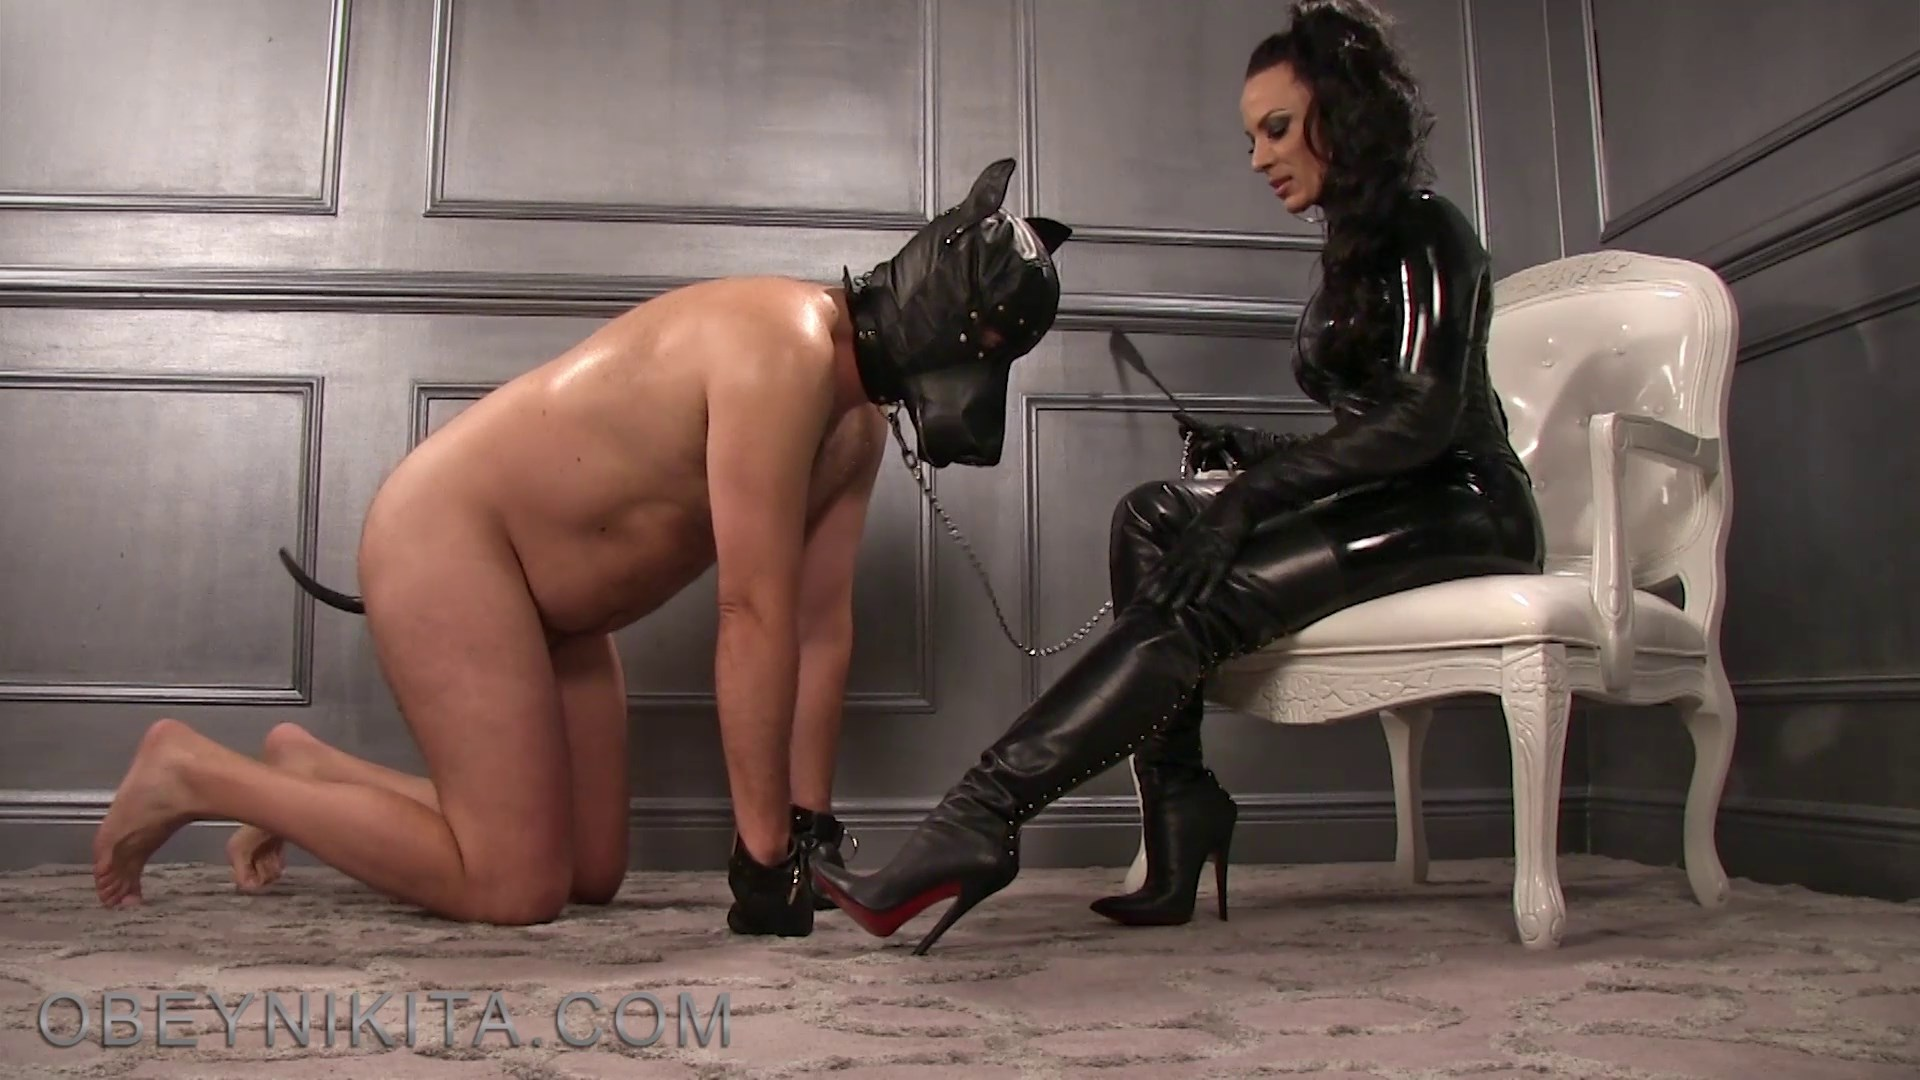 Girl puppy play bdsm